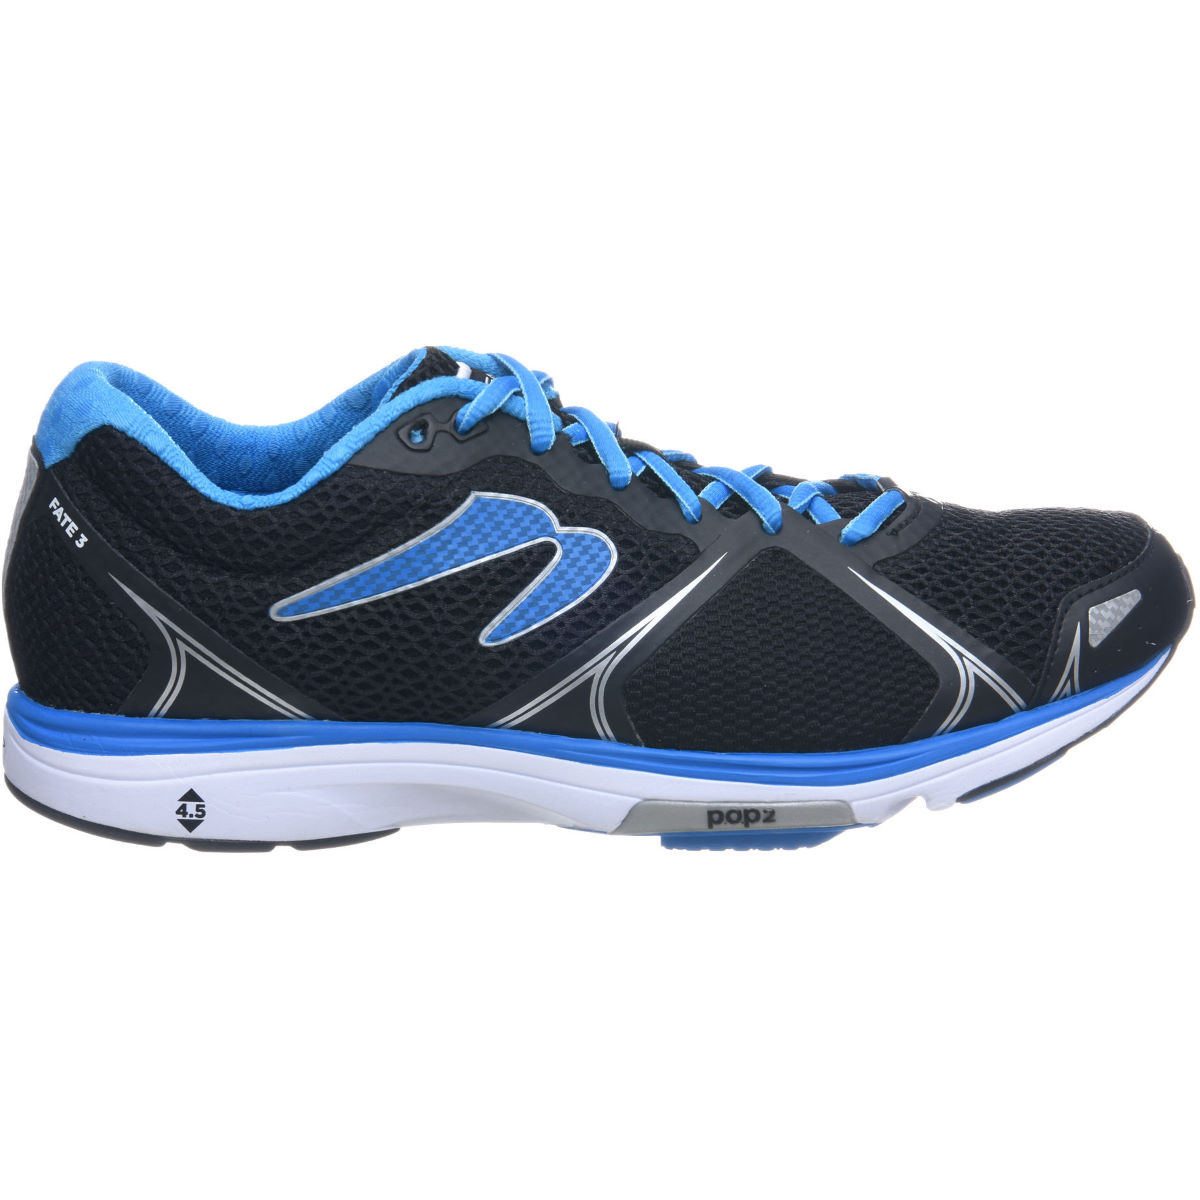 Newton Running Shoes Fate III Shoes - Zapatillas acolchadas